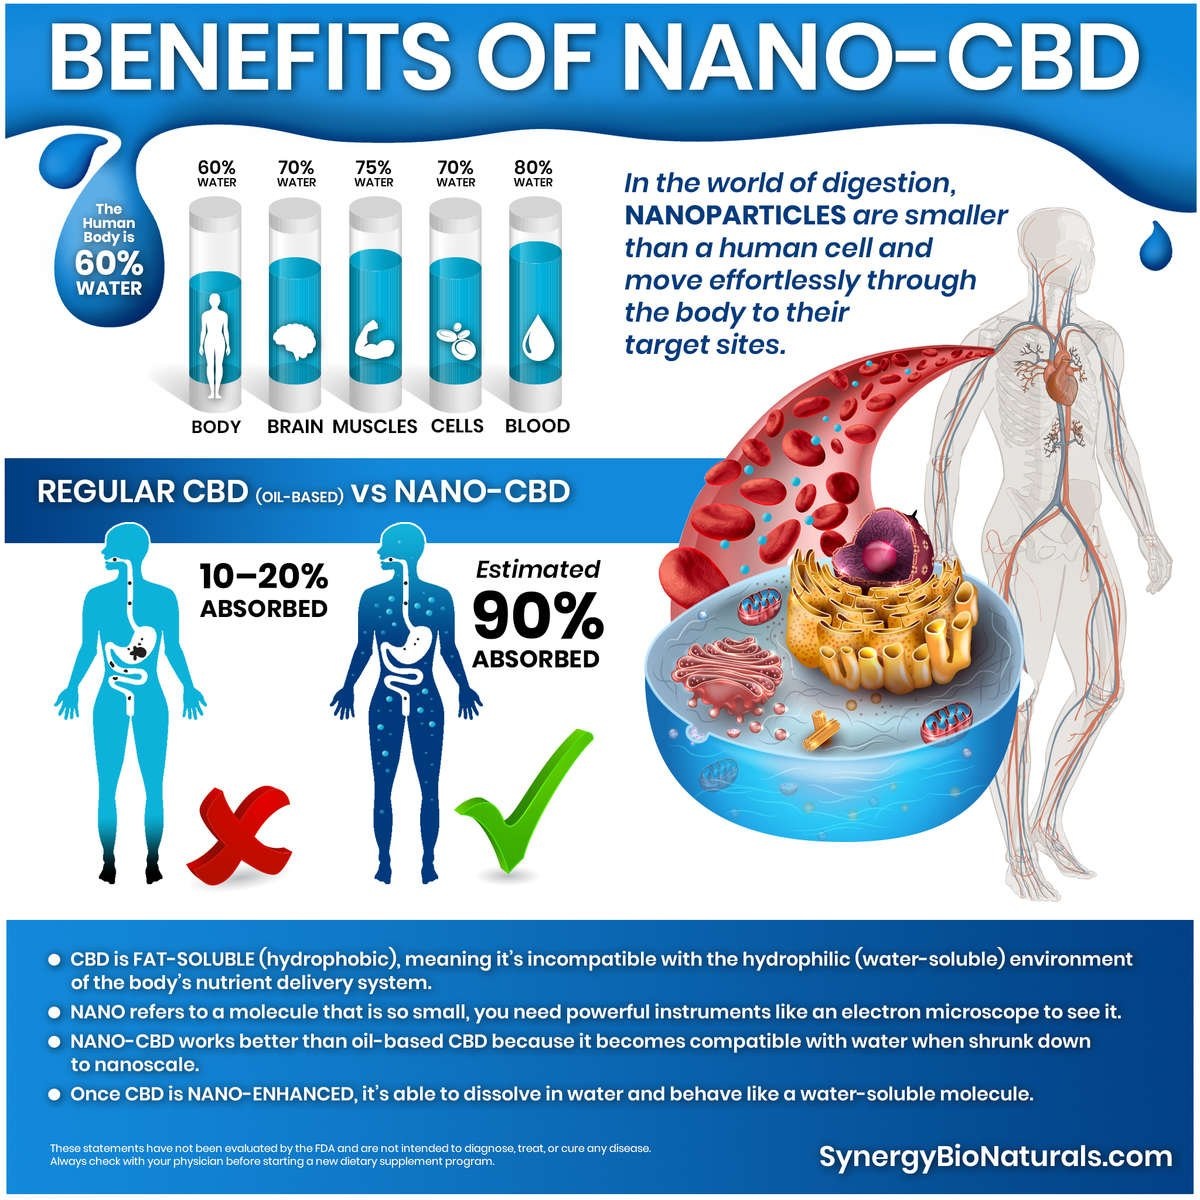 An infographic on nano-CBD that visually communicates the absorbability of nano-enhanced CBD using an abstract human outline with an artery extended from the body and blood cells circulating amidst small nano-sized water droplets.